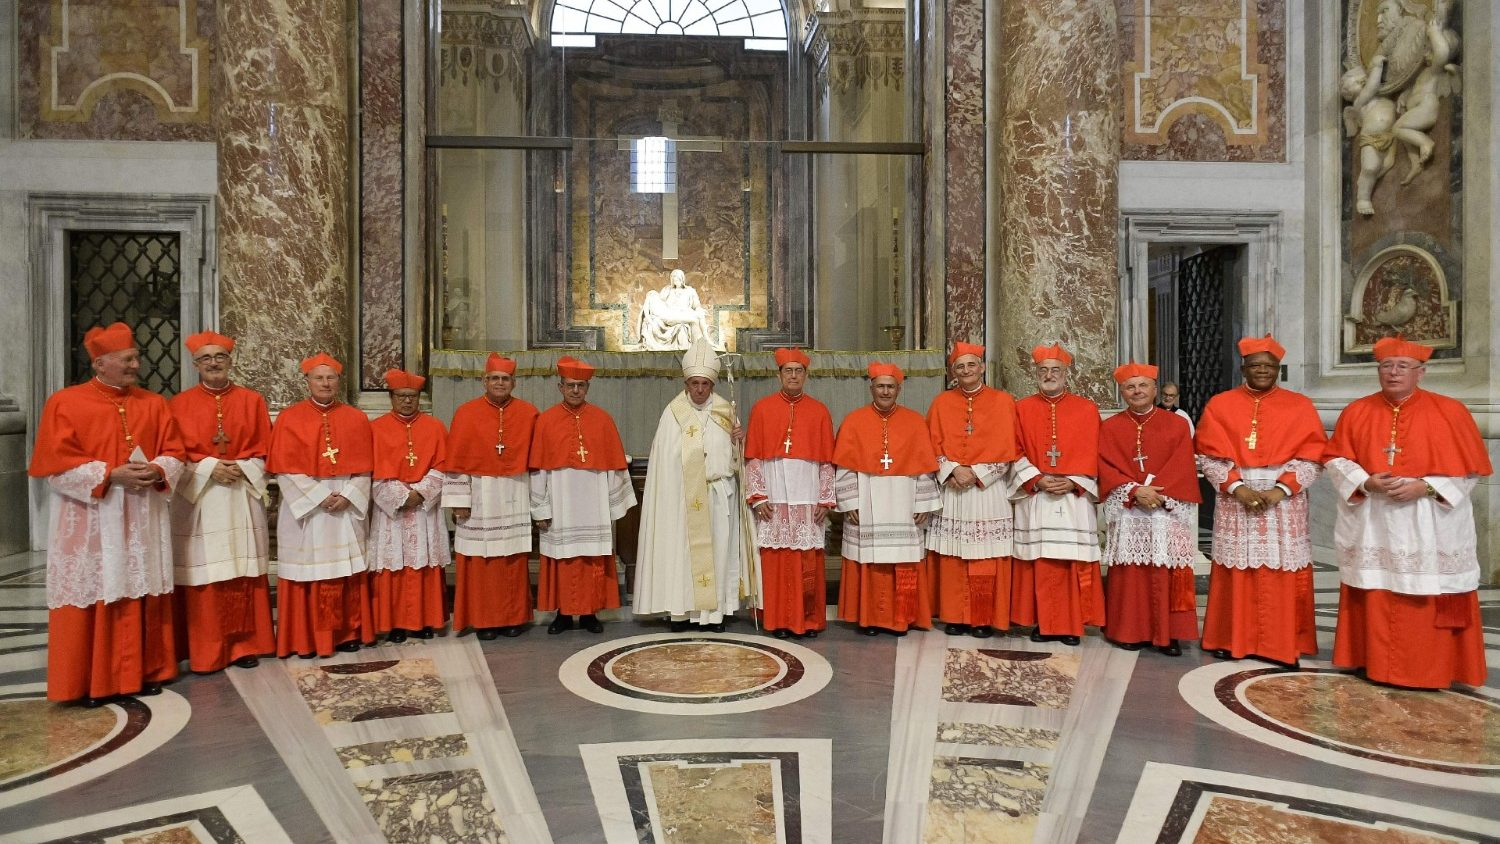 New Cardinals come from all corners of the earth - Vatican News